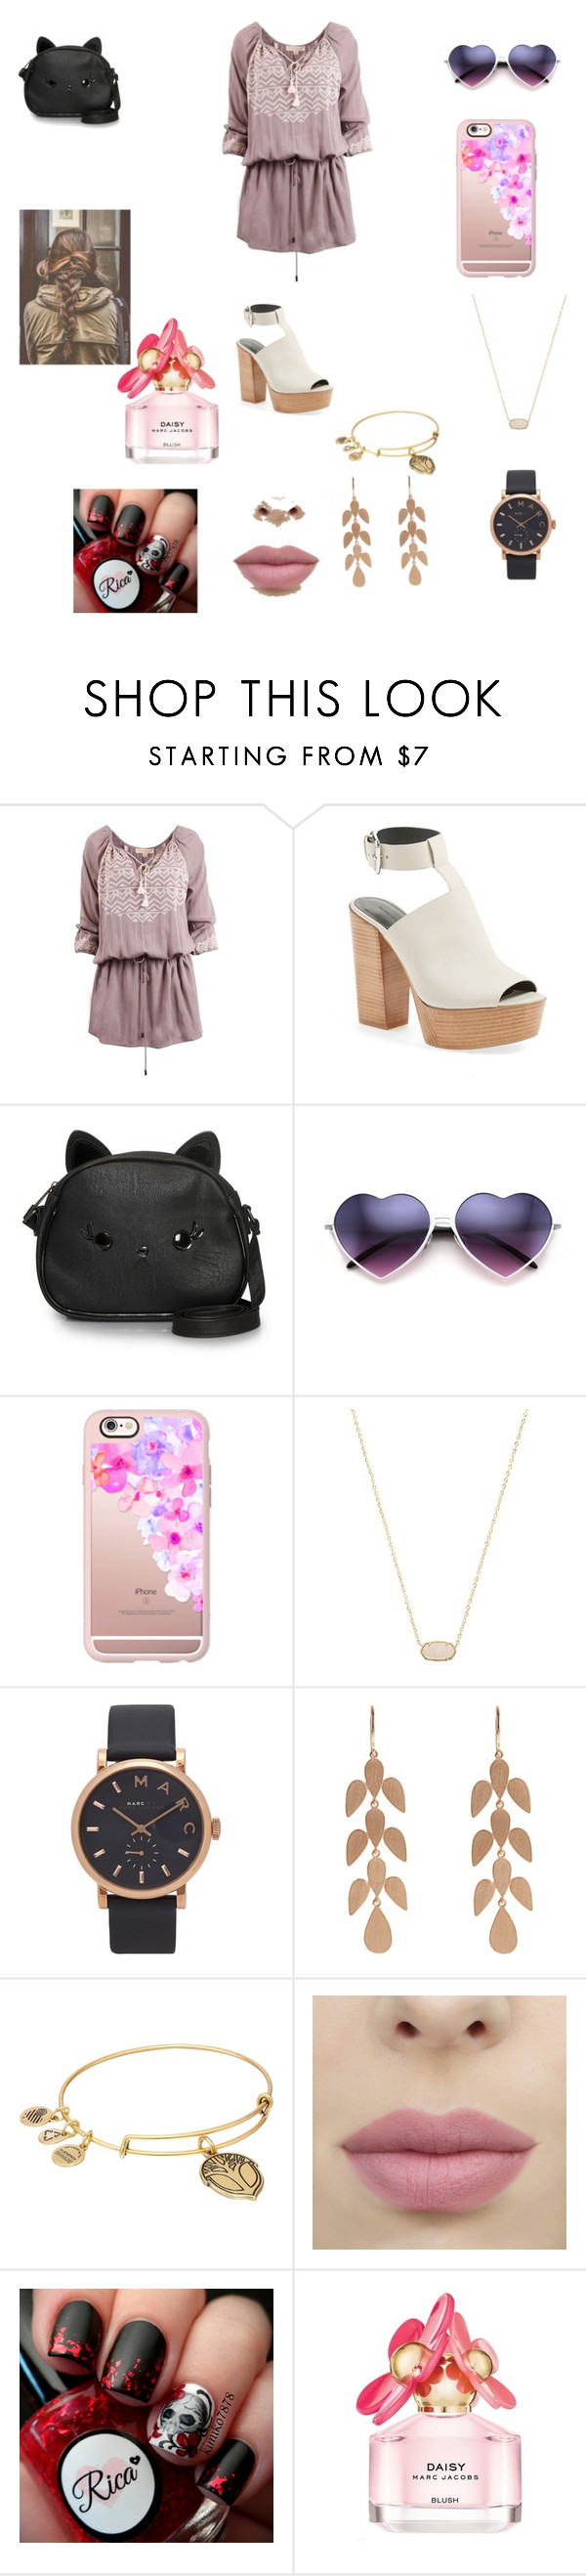 """"" by keilydelgado on Polyvore featuring Rebecca Minkoff, Loungefly, Casetify, Kendra Scott, Marc Jacobs, Irene Neuwirth and Alex and Ani"